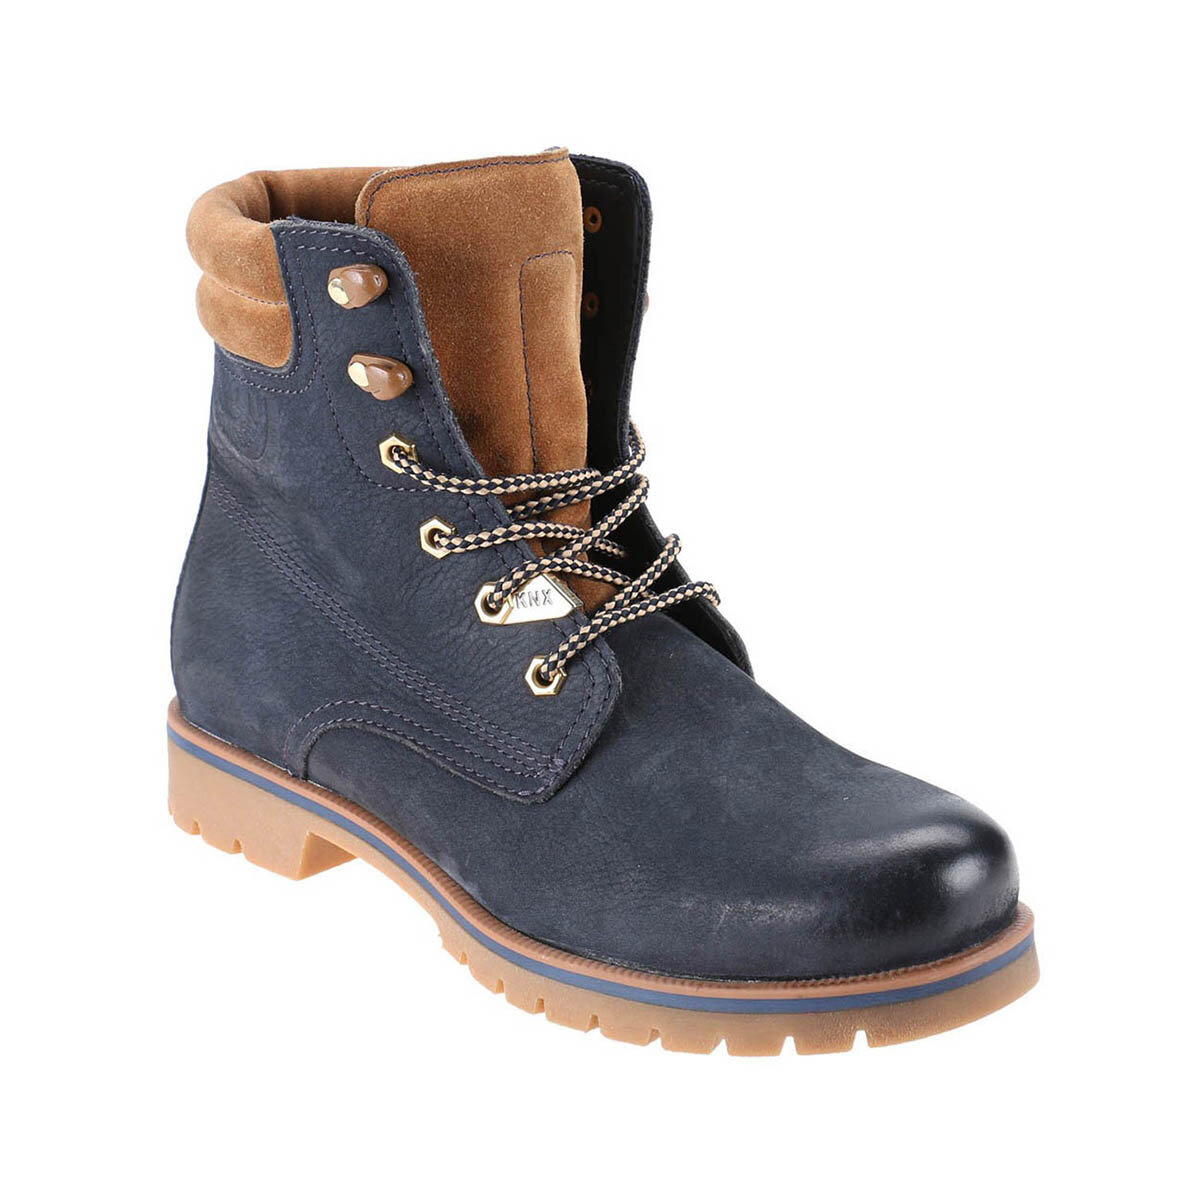 FLO 1252216 Navy Blue Men 'S Boots KINETIX